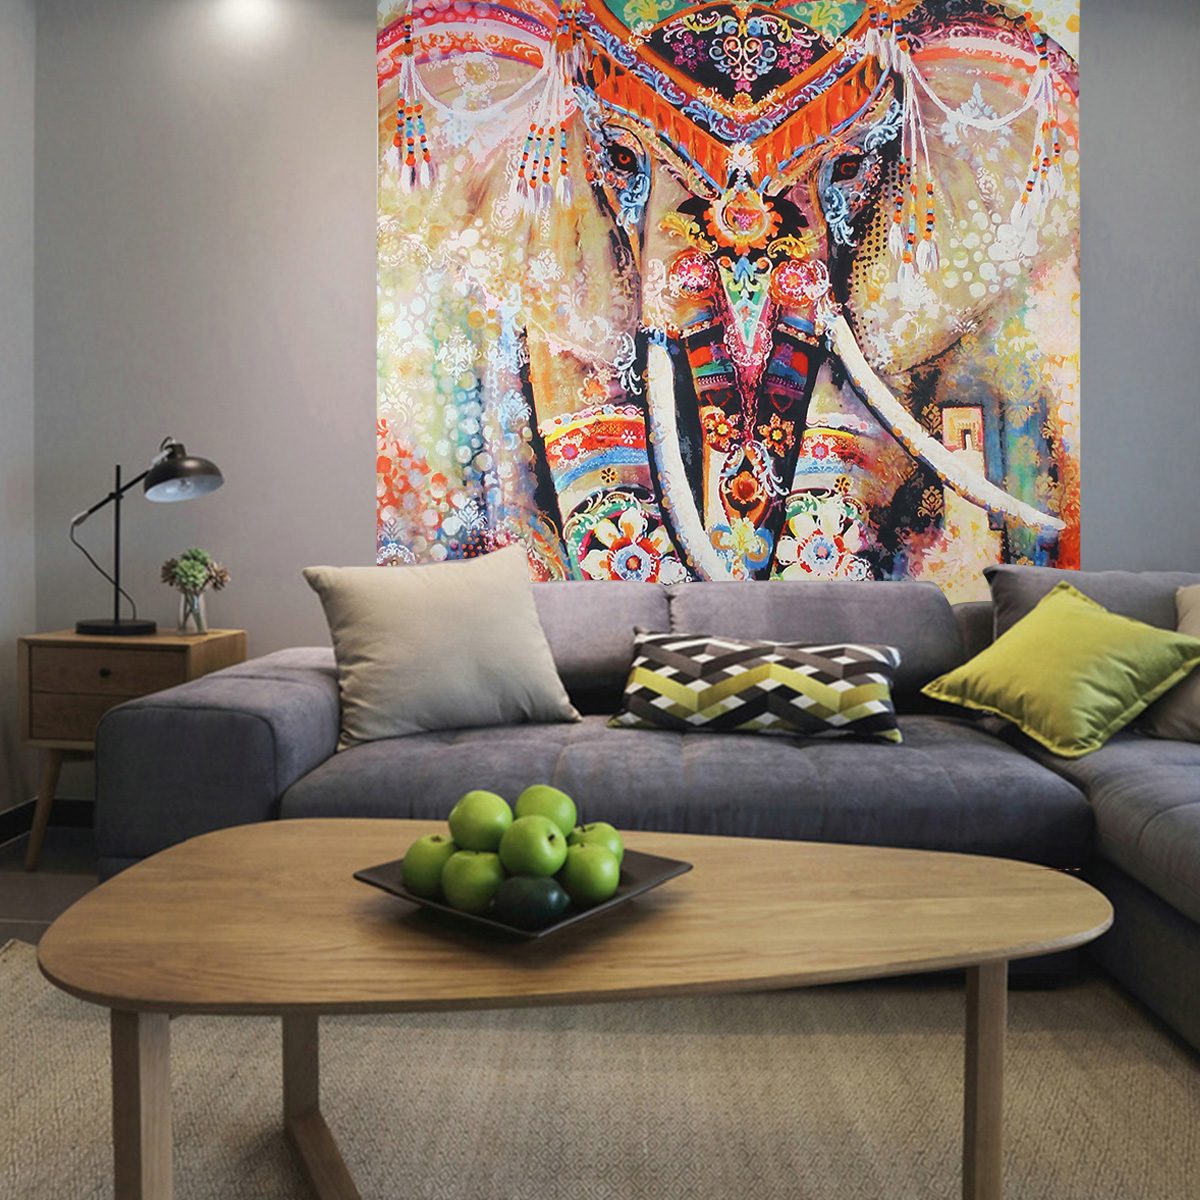 Elephant Mandala Tapestry Throw Towel Hippie Tapestry Floral Printed Home Decor Wall Tapestries Bedspread 210*150CM 6